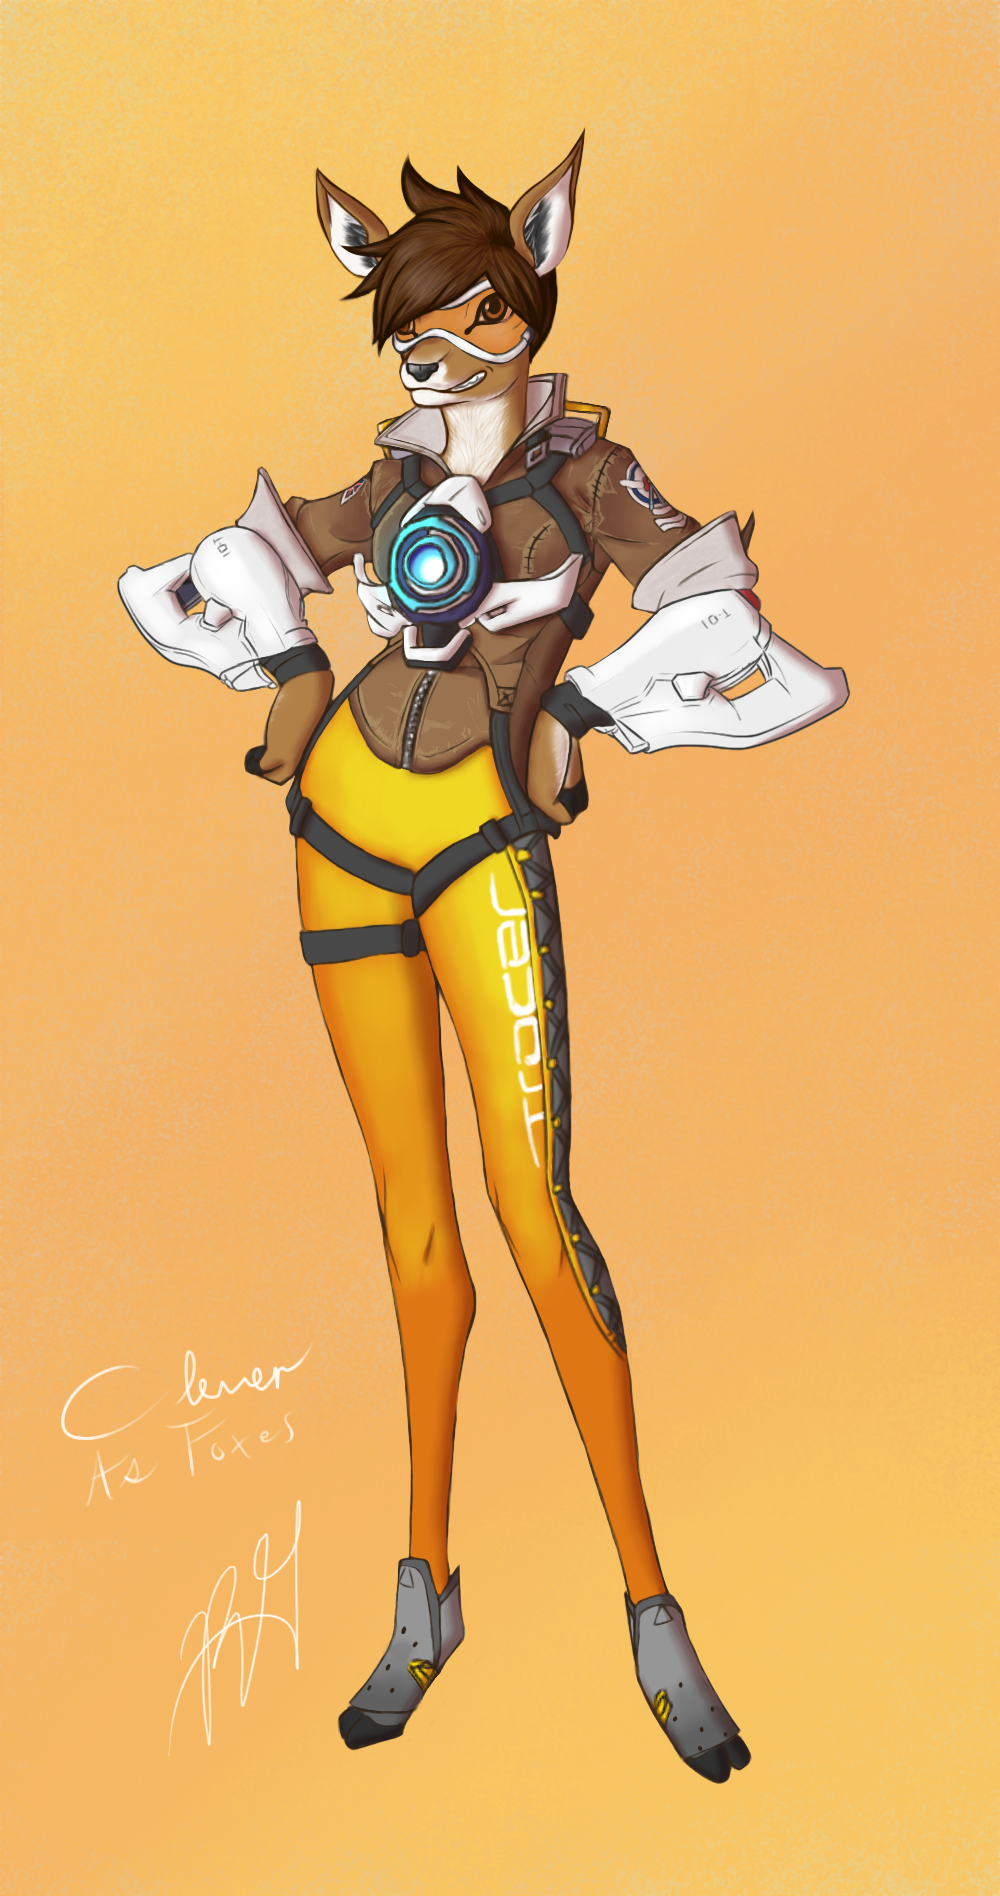 Tracer from overwatch - 2 6